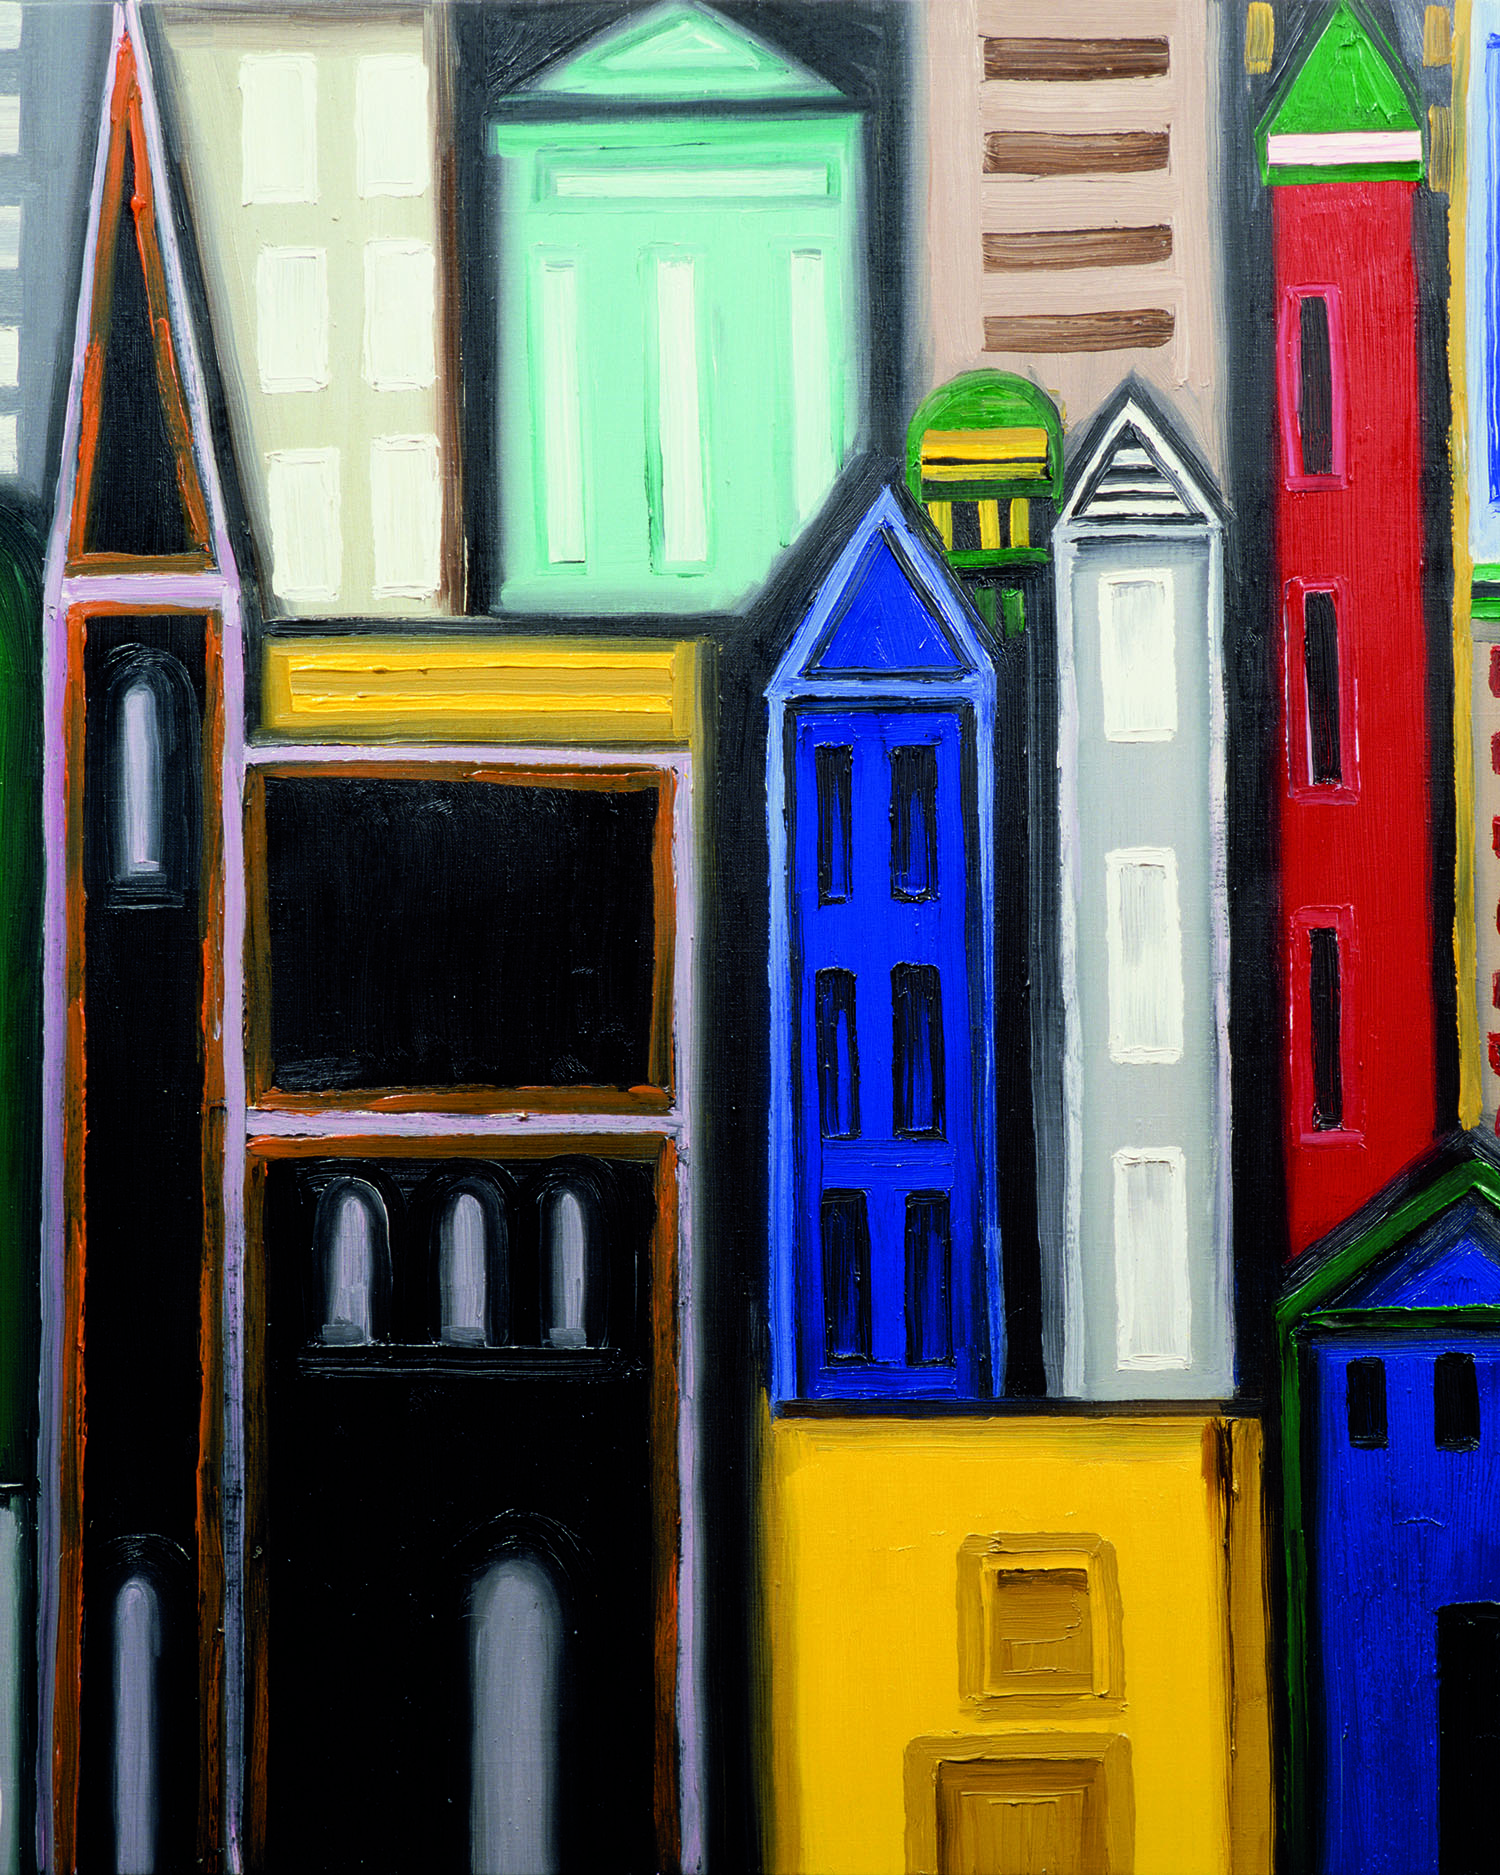 City. Josep Navarro Vives. 1992, oil on canvas, cm 81 x 100.